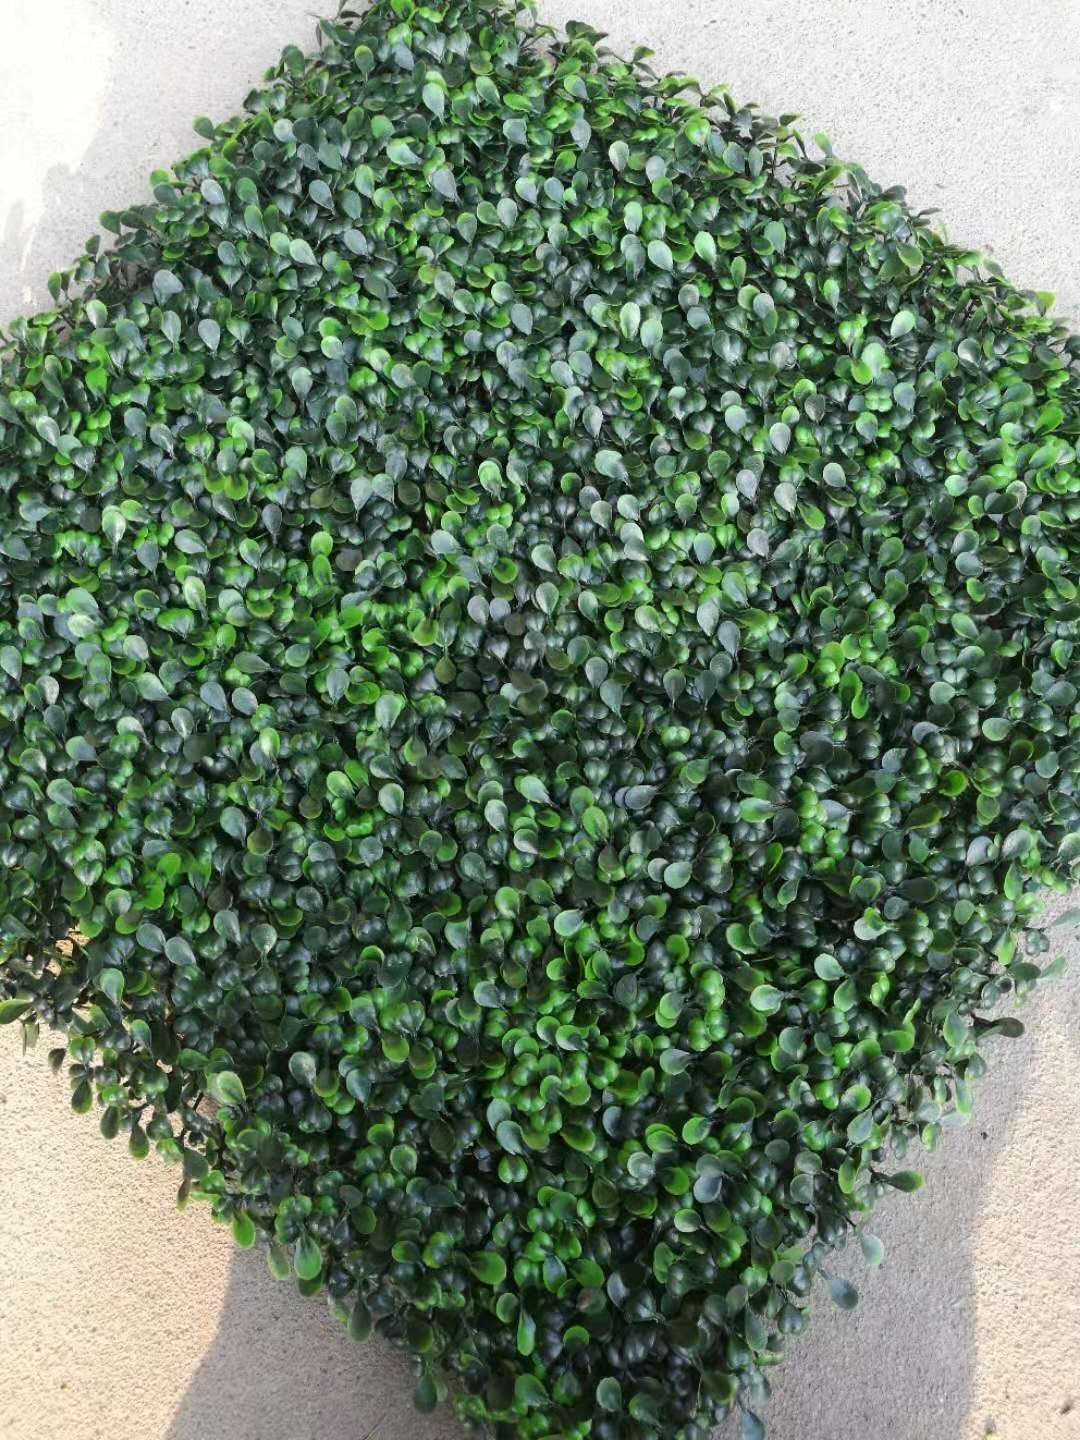 50*50cm Anti-UV plastic greenery plant fence panels boxwood mat artificial hedges for Garden Decoration